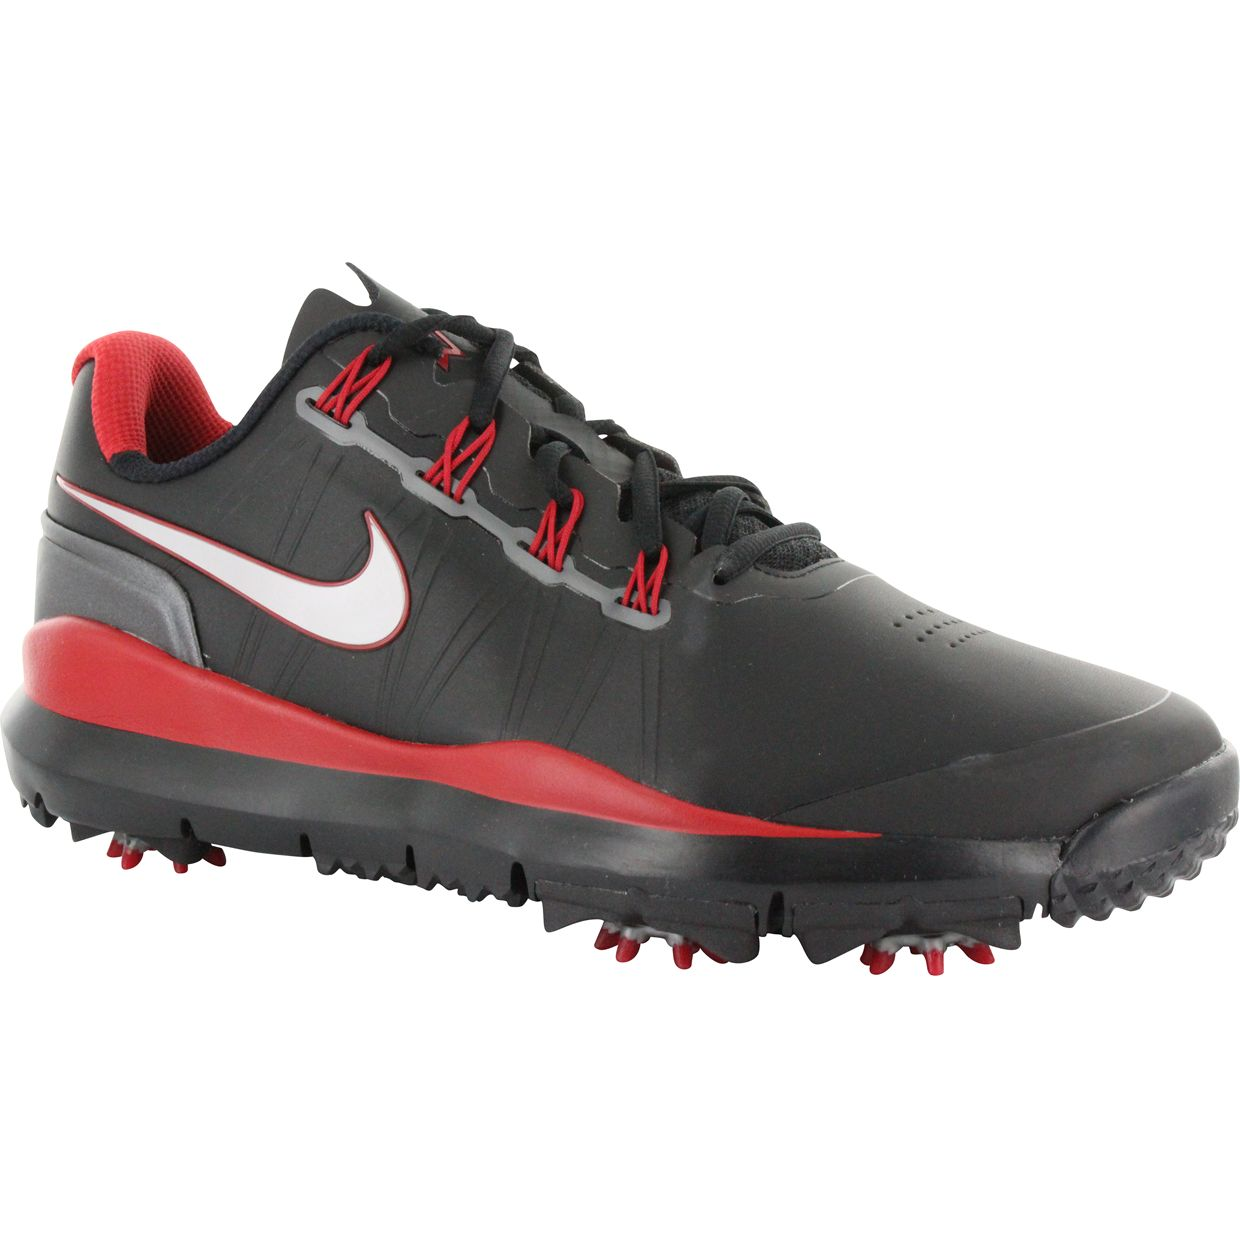 The TW'15 golf shoe from Nike. A debuting addition to the Tiger Woods collection, this year's shoe surpasses the design and technologies of its predecesors.